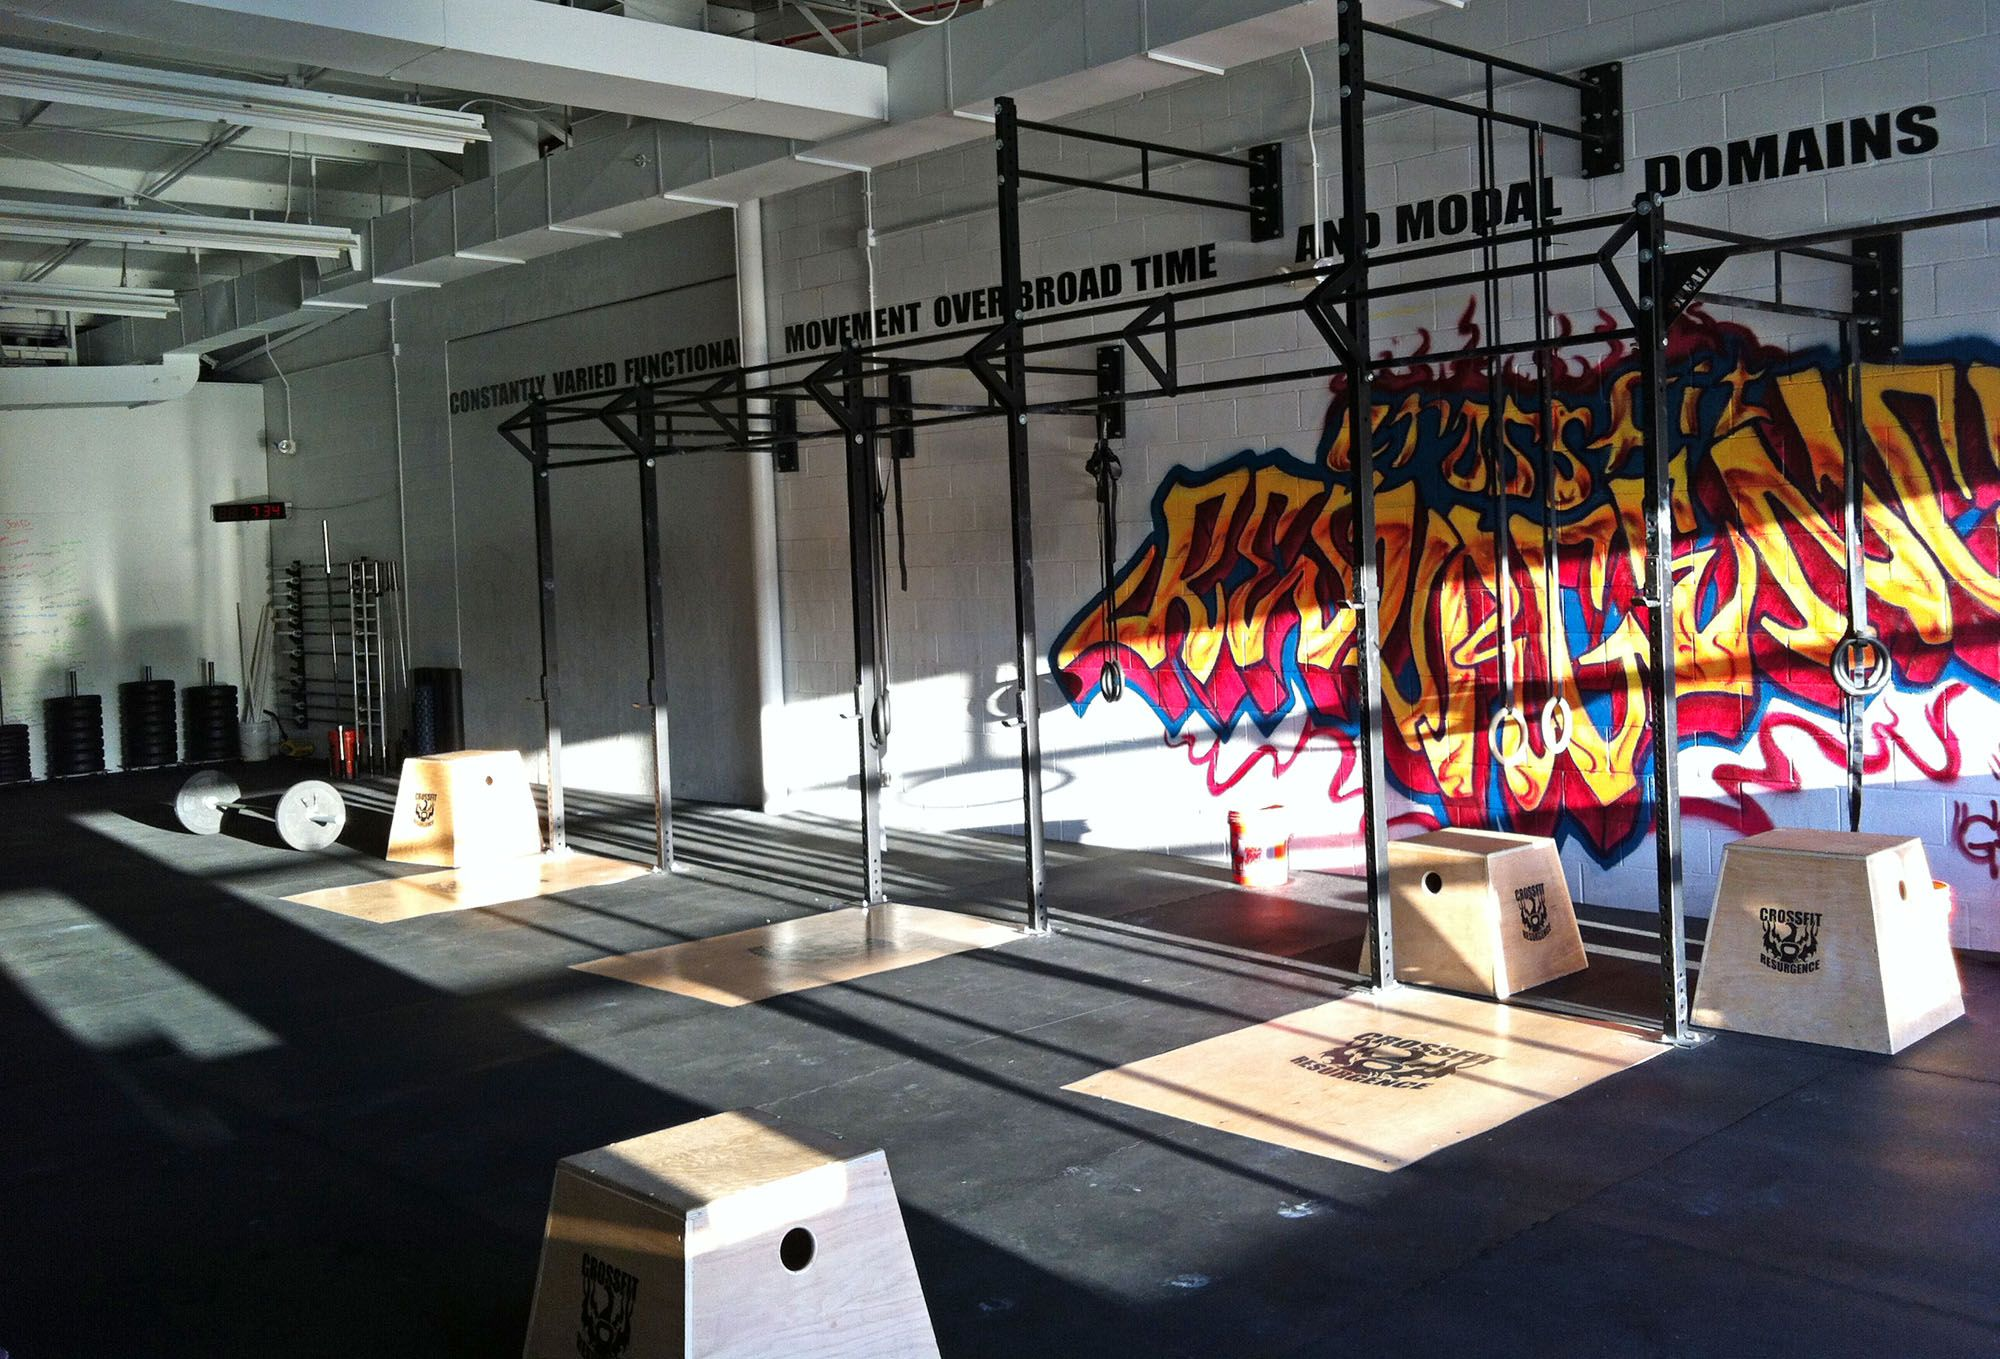 If the walls of your box could talk, what would they say? #crossfit